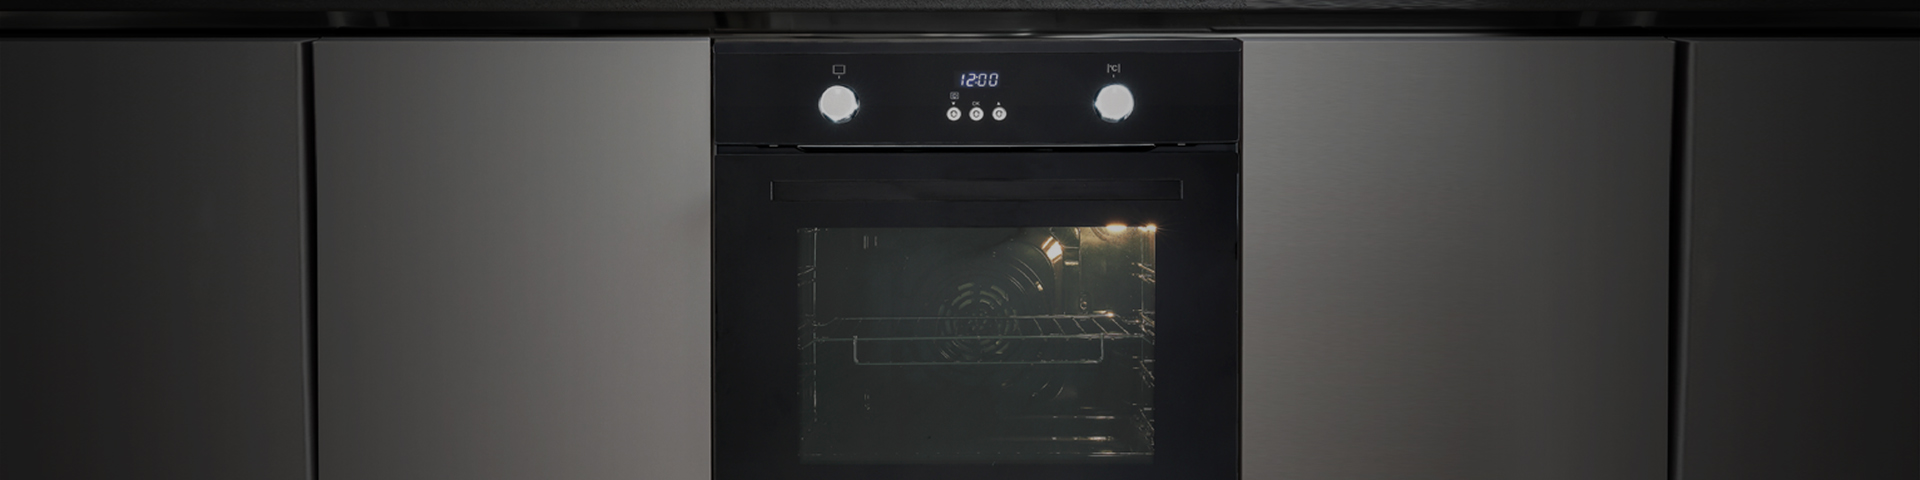 73L Electric Oven-banner - Blank